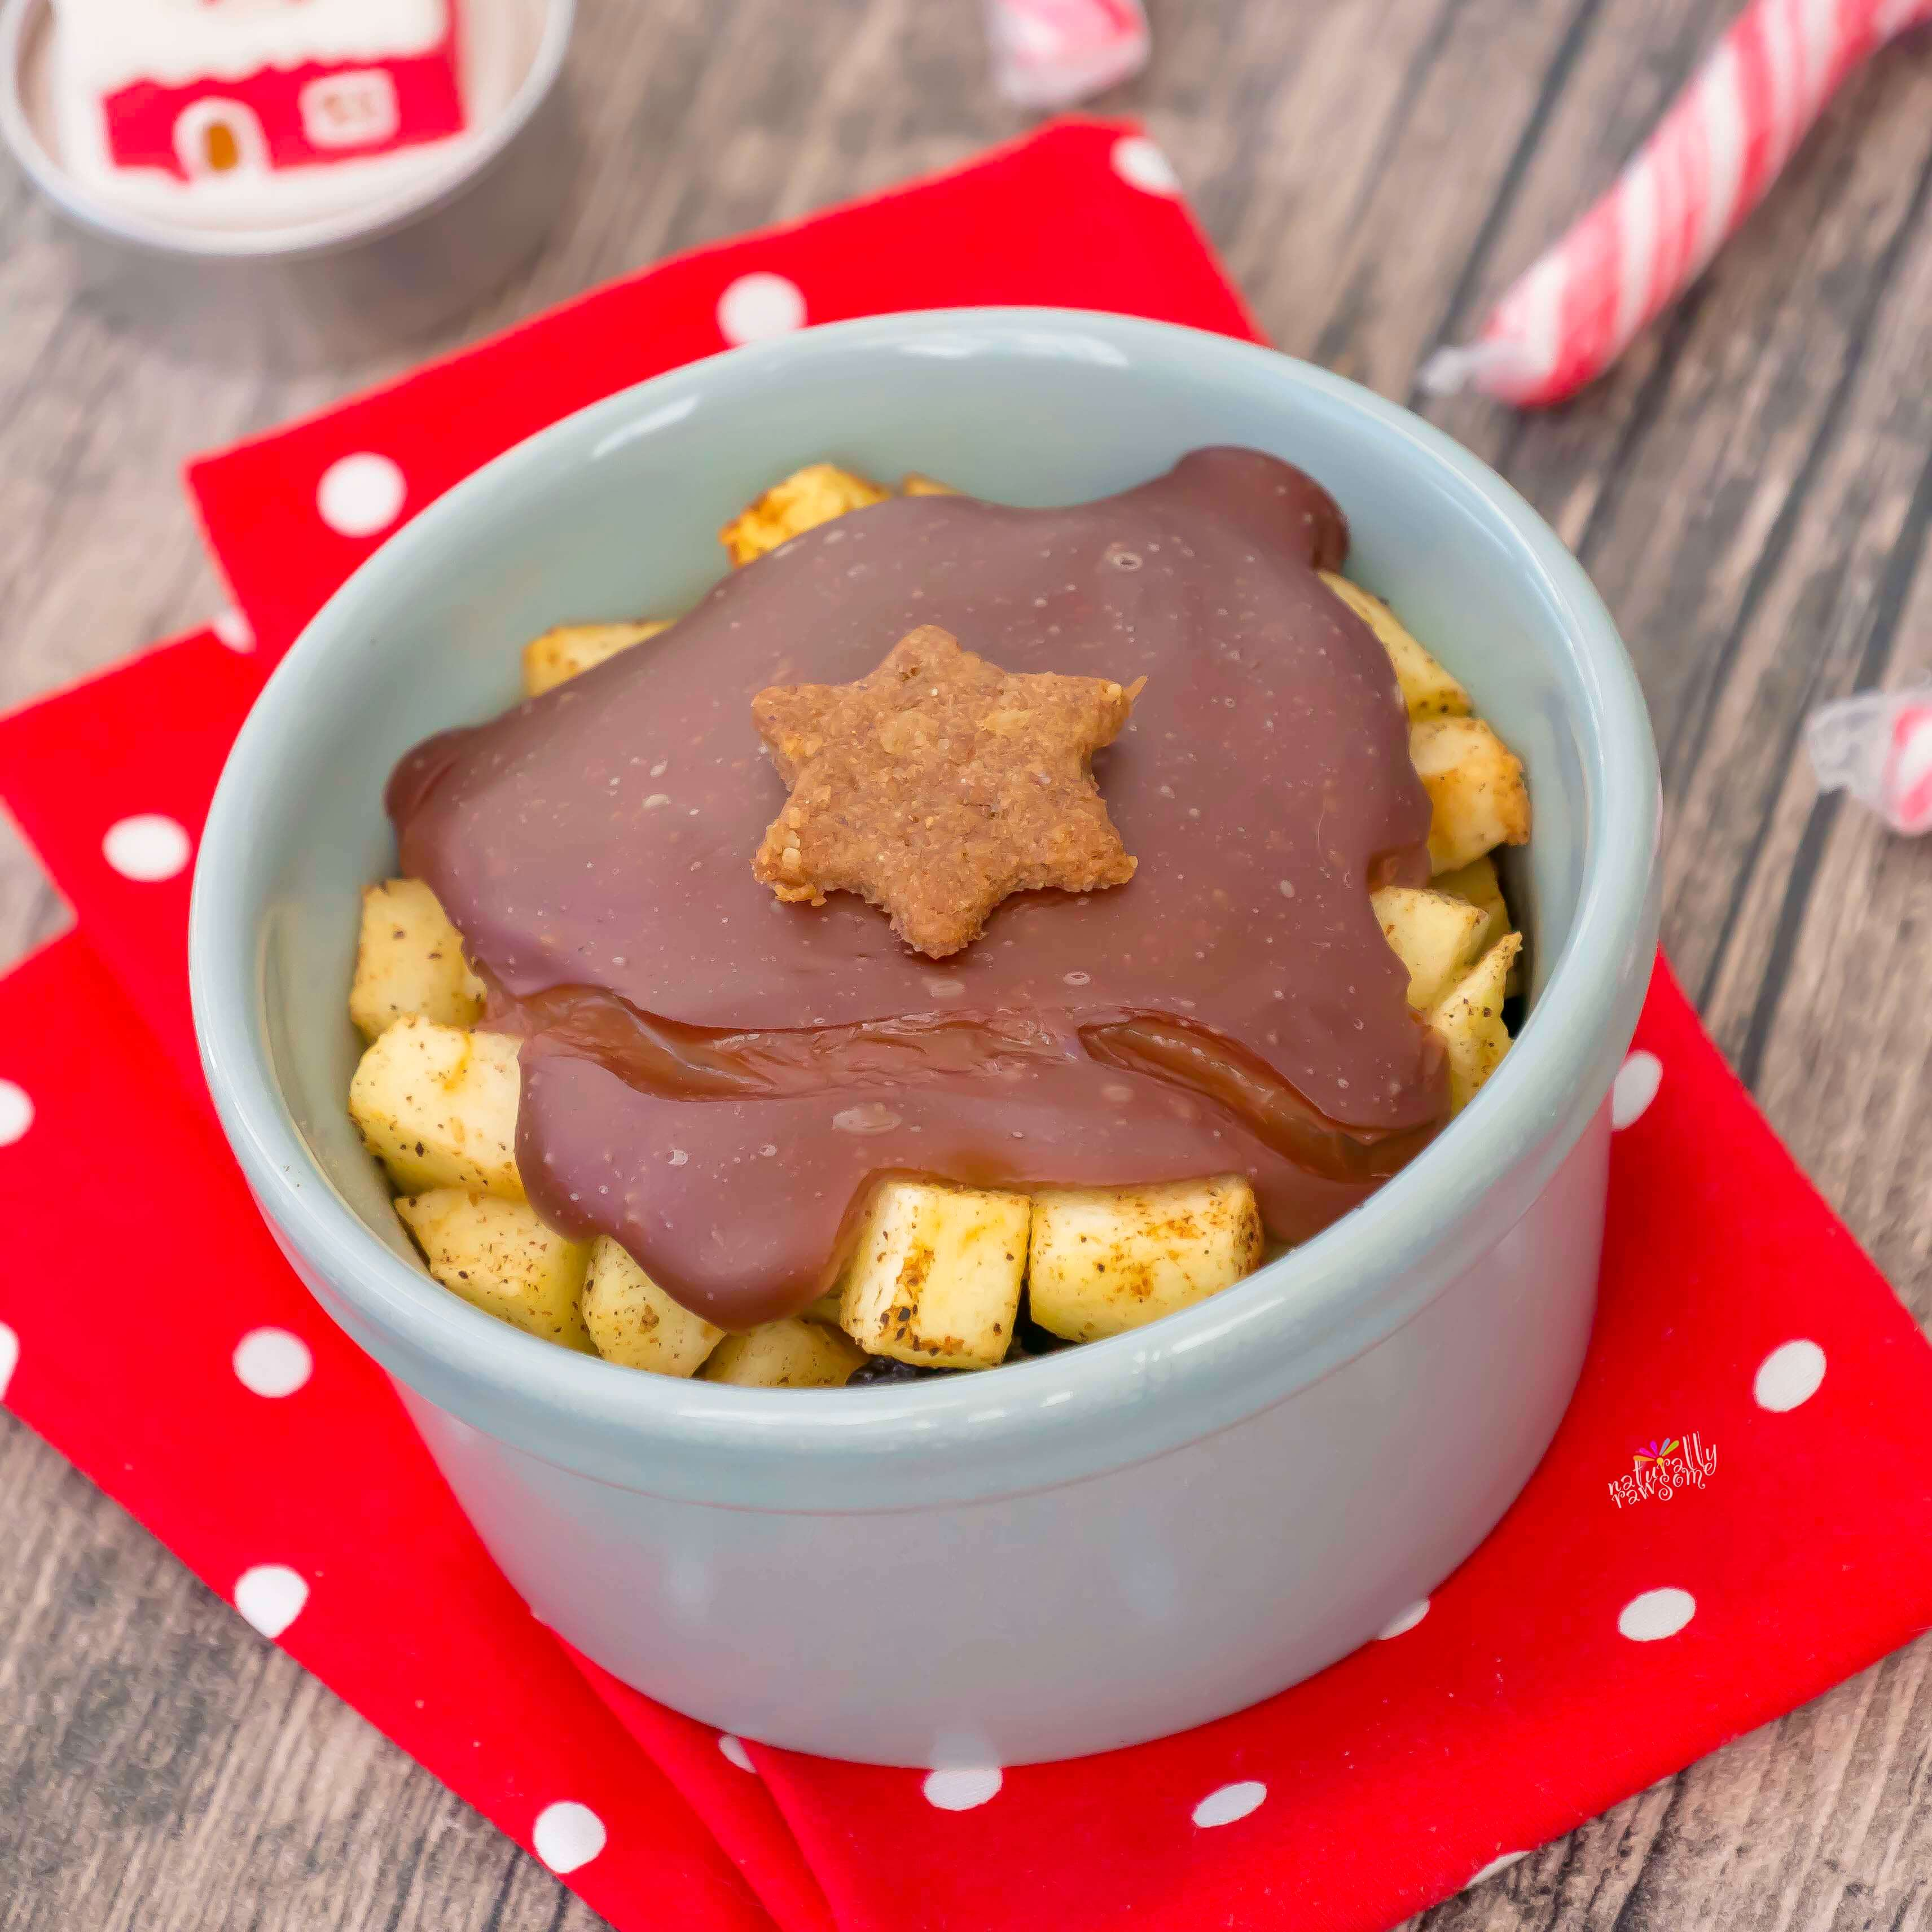 Baked Apple with Chocolate Pudding